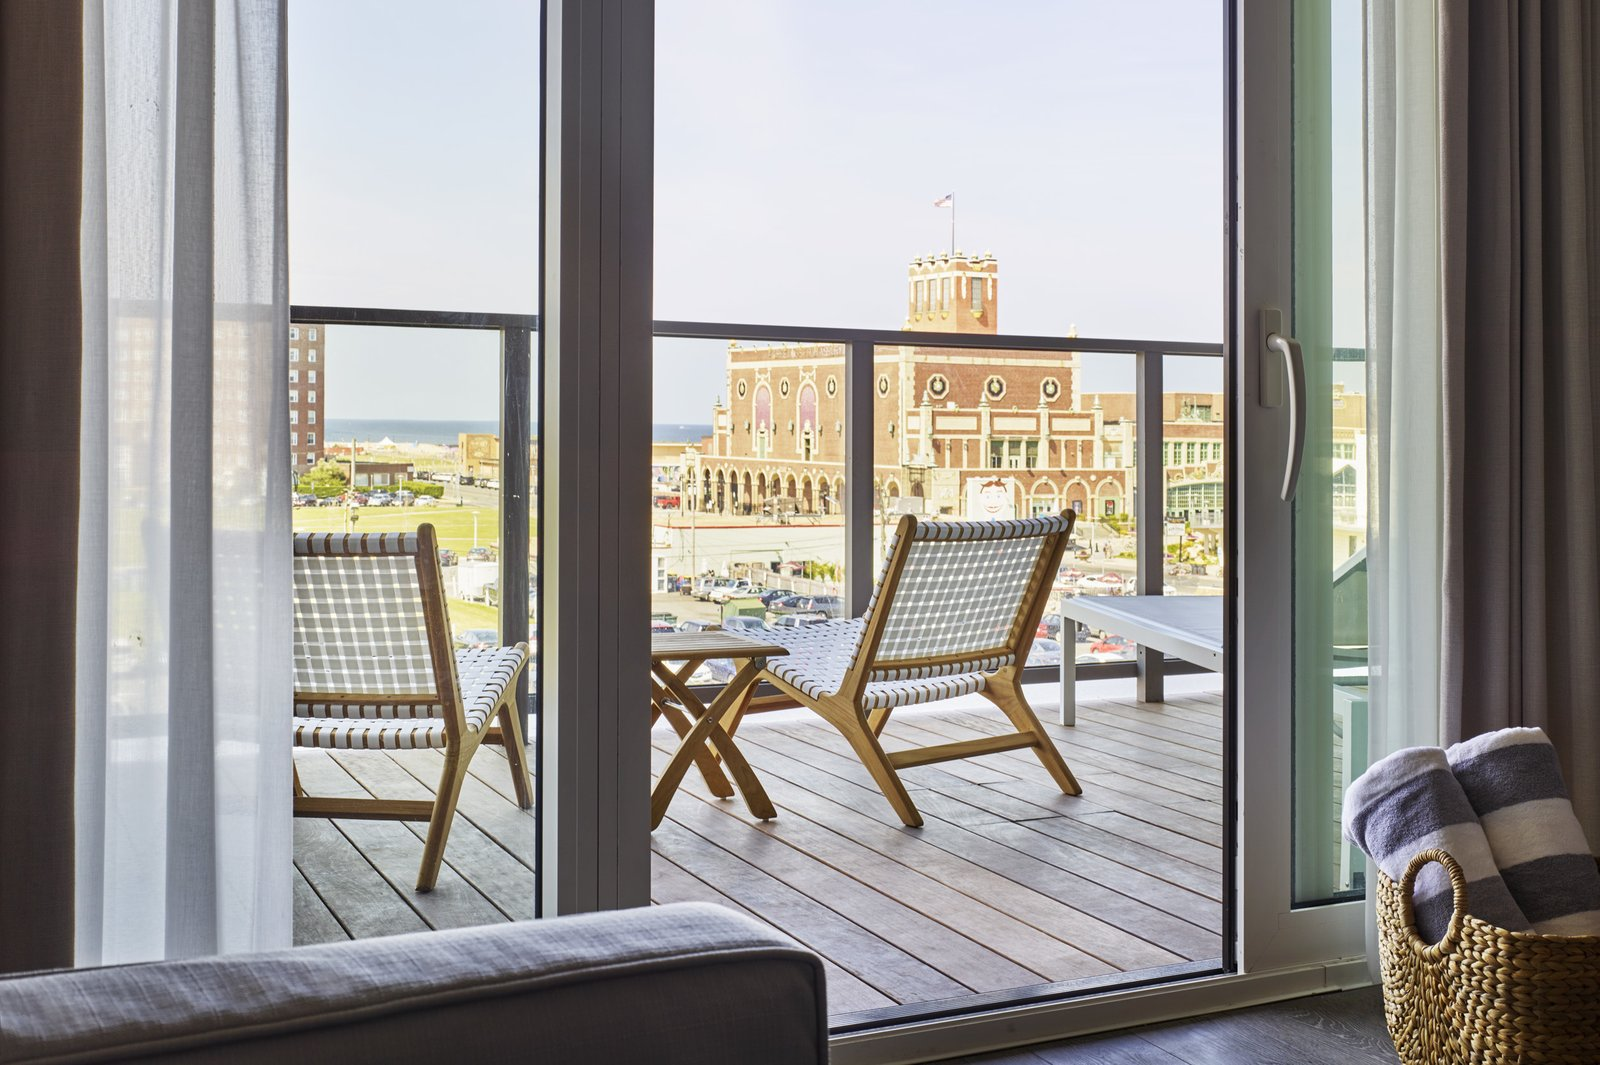 Outdoor, Small Patio, Porch, Deck, and Wood Patio, Porch, Deck Ocean-facing rooms look out on area landmarks like the Asbury Park Convention Hall, built in 1930.  Asbury Ocean Club Hotel from A New Five-Star Hotel Gives the Jersey Shore an Upgrade